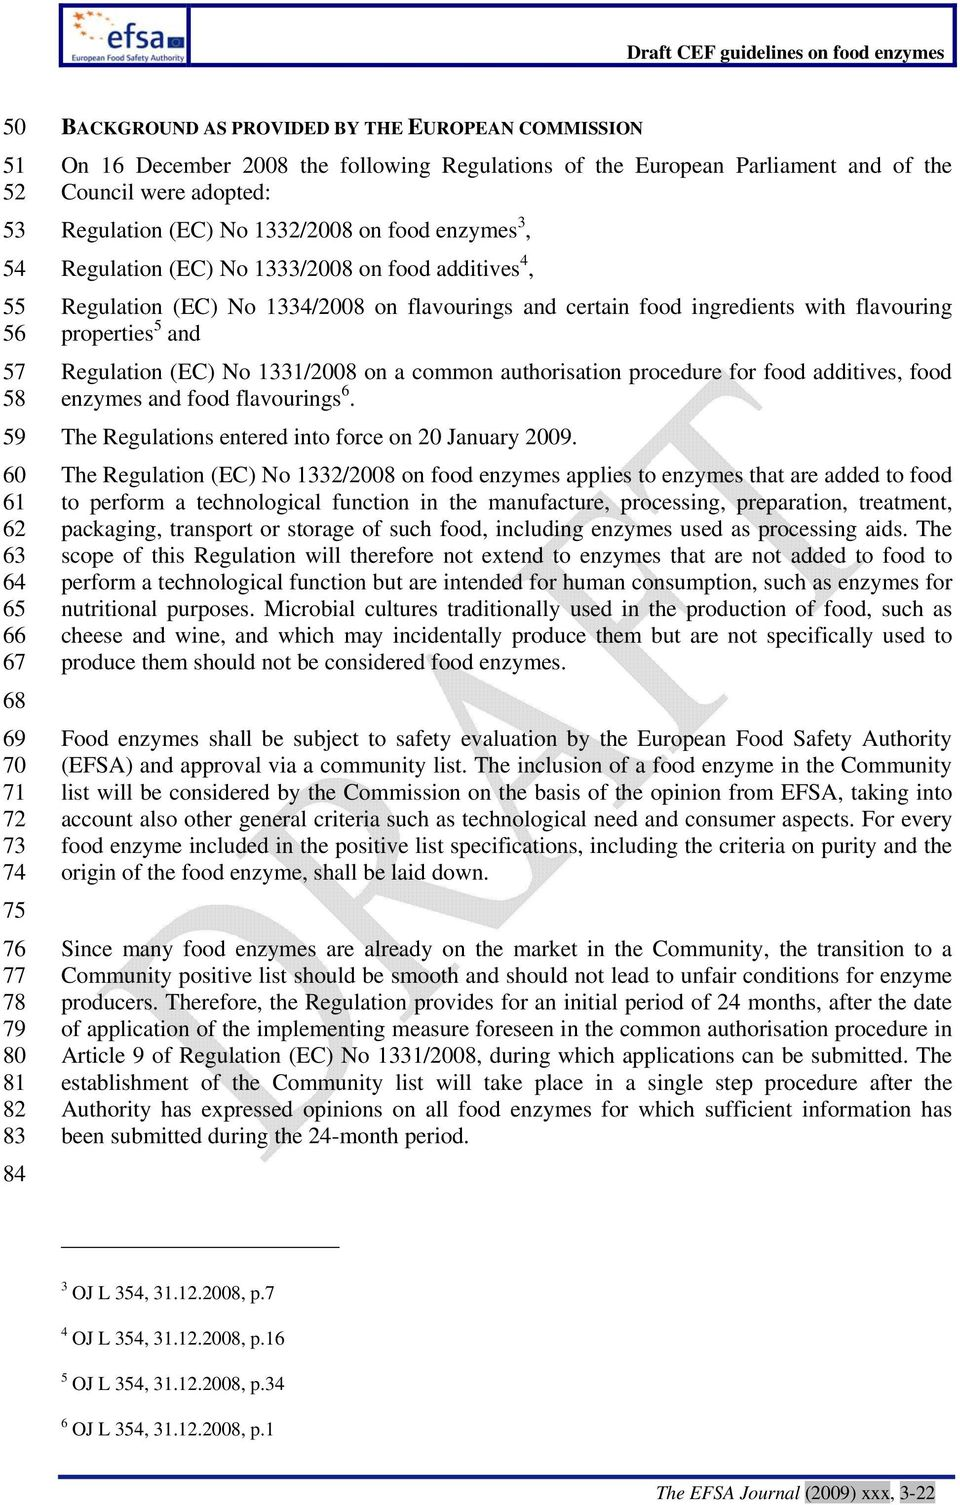 on flavourings and certain food ingredients with flavouring properties 5 and Regulation (EC) No 1331/2008 on a common authorisation procedure for food additives, food enzymes and food flavourings 6.